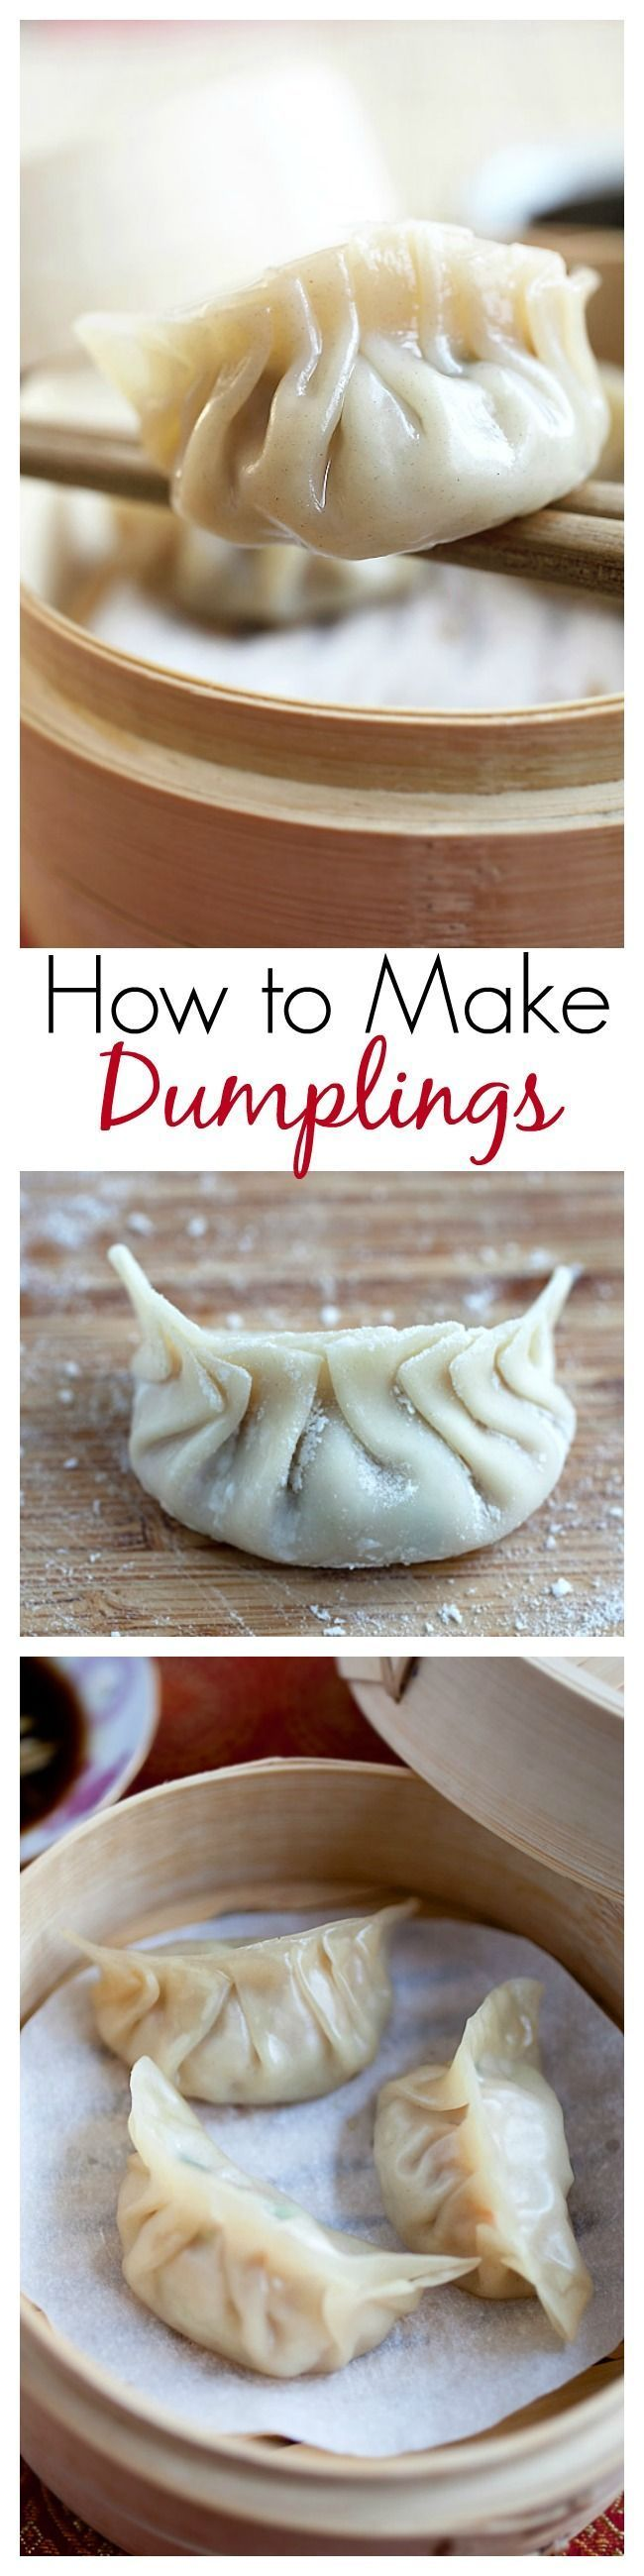 How to make dumplings - learn the easy steps to make healthy and delicious dumplings